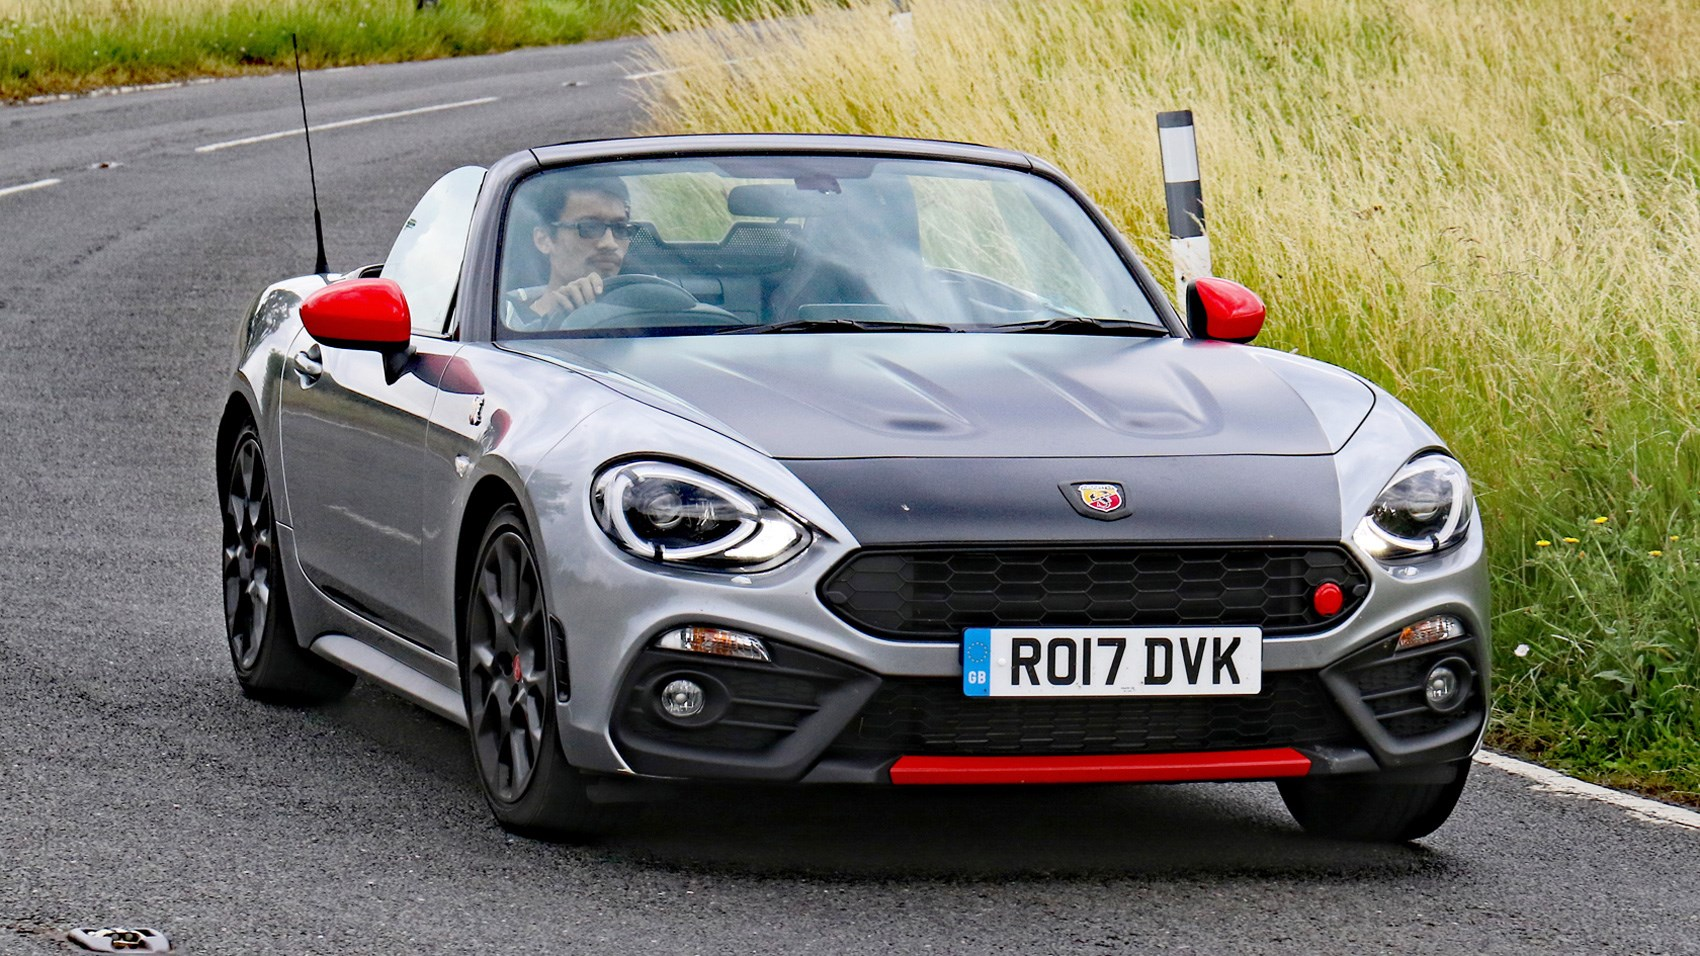 abarth 124 spider vs mazda mx 5 bbr twin test review car magazine. Black Bedroom Furniture Sets. Home Design Ideas